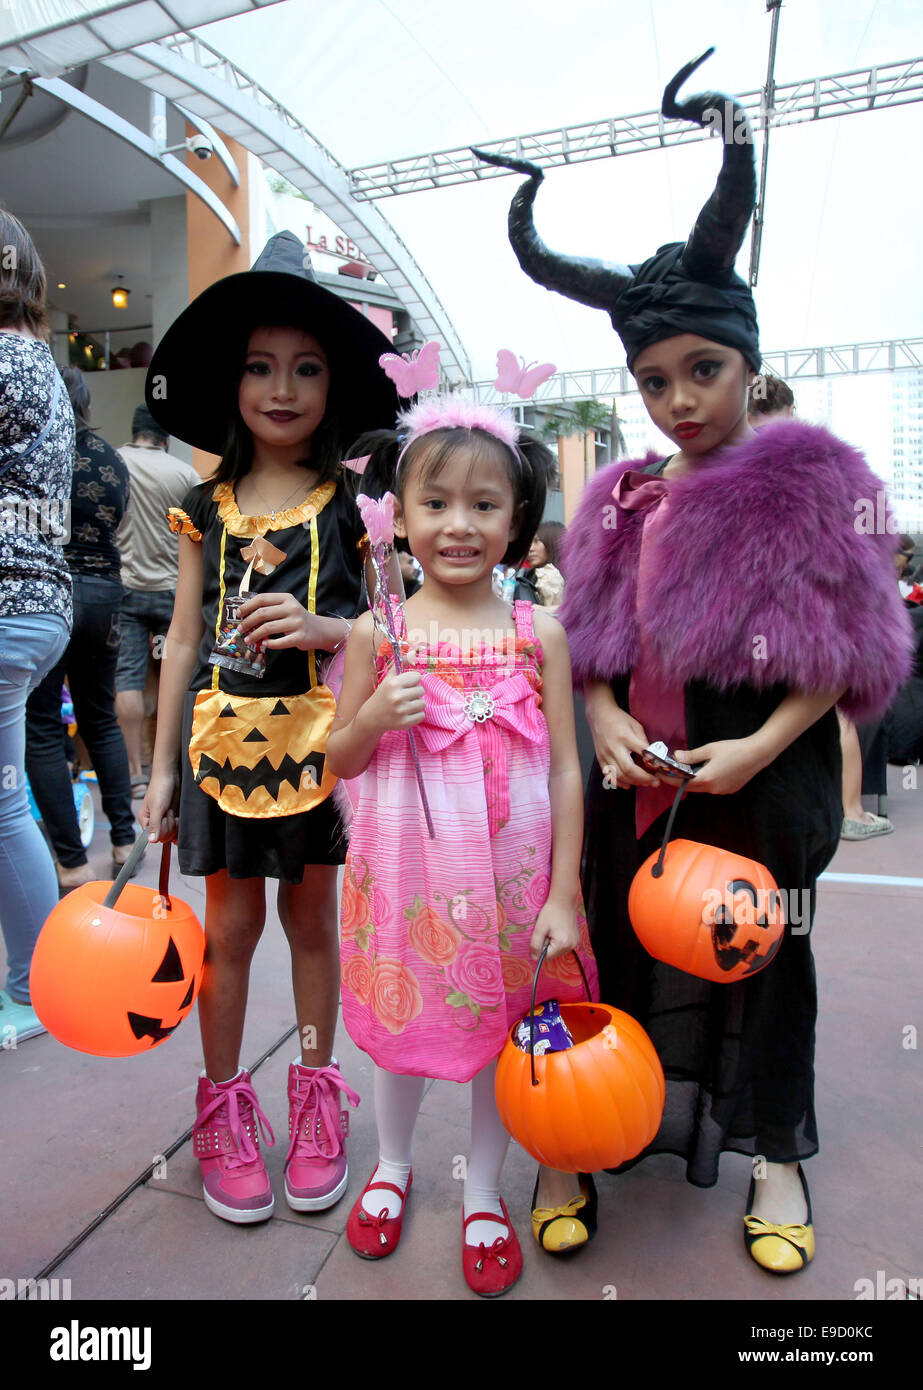 Quezon City Philippines. 25th Oct 2014. Children dressed in Halloween costumes attend a Trick or Treat event in celebration of Halloween in Quezon City ...  sc 1 st  Alamy & Quezon City Philippines. 25th Oct 2014. Children dressed in Stock ...